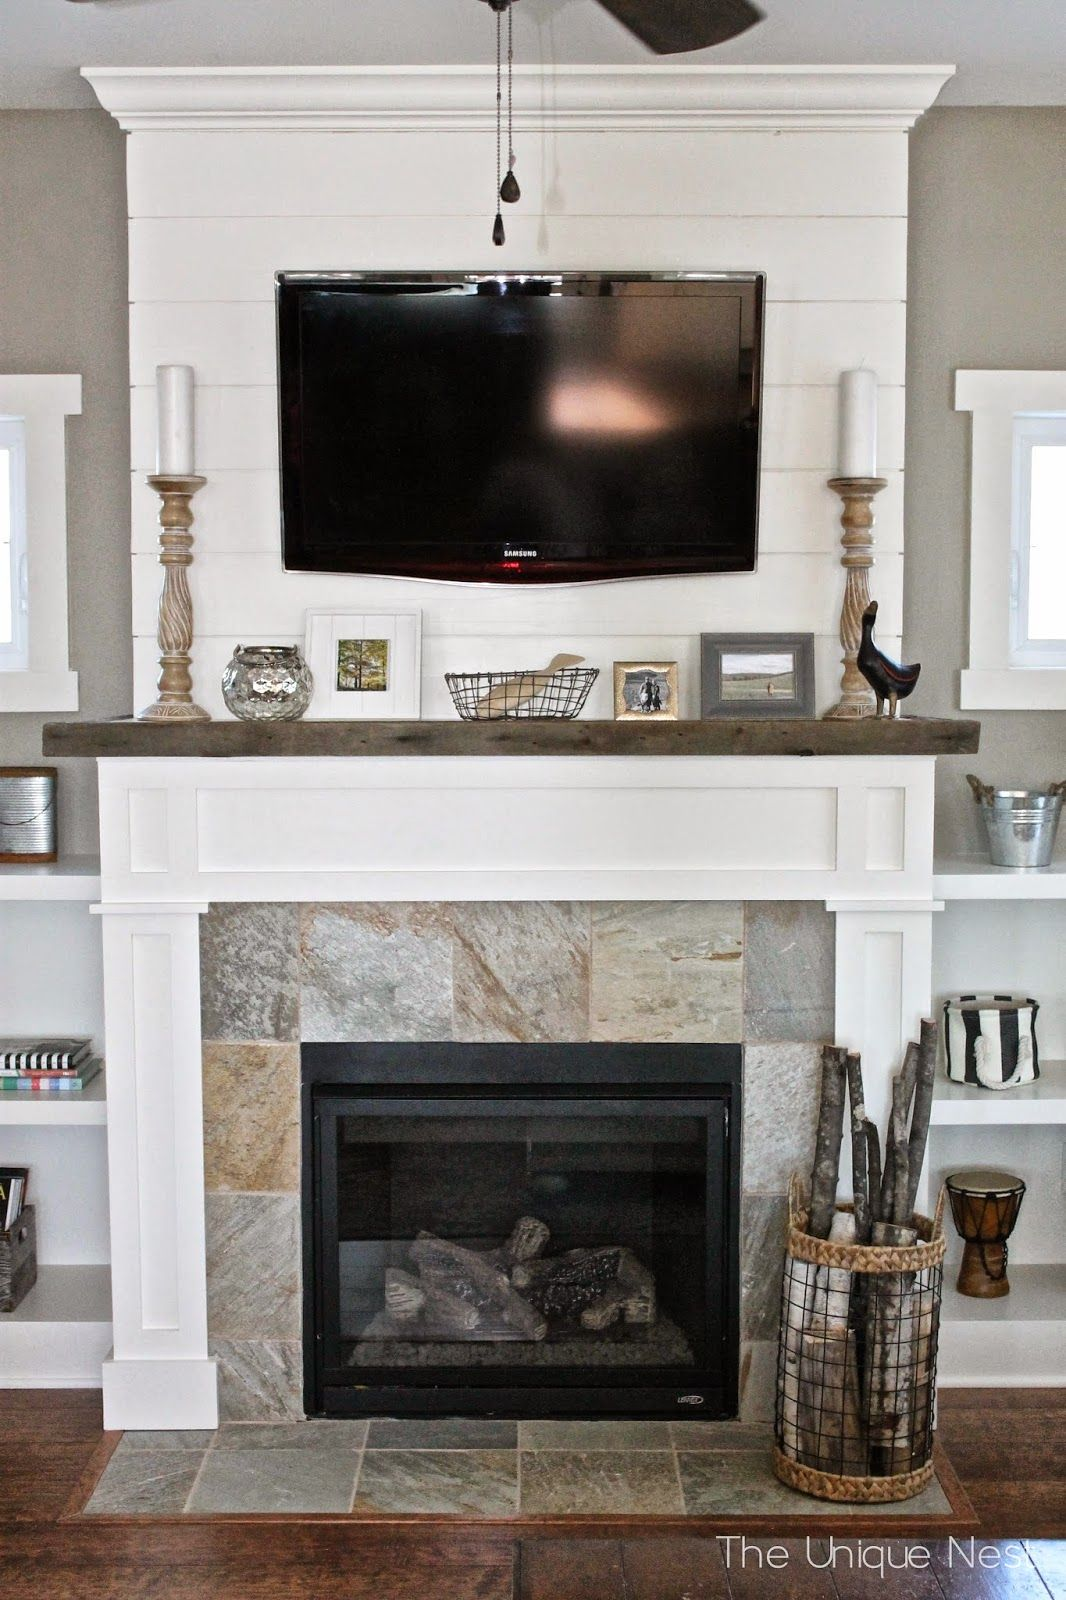 27+ Stunning Fireplace Tile Ideas for your Home | Remodel ...